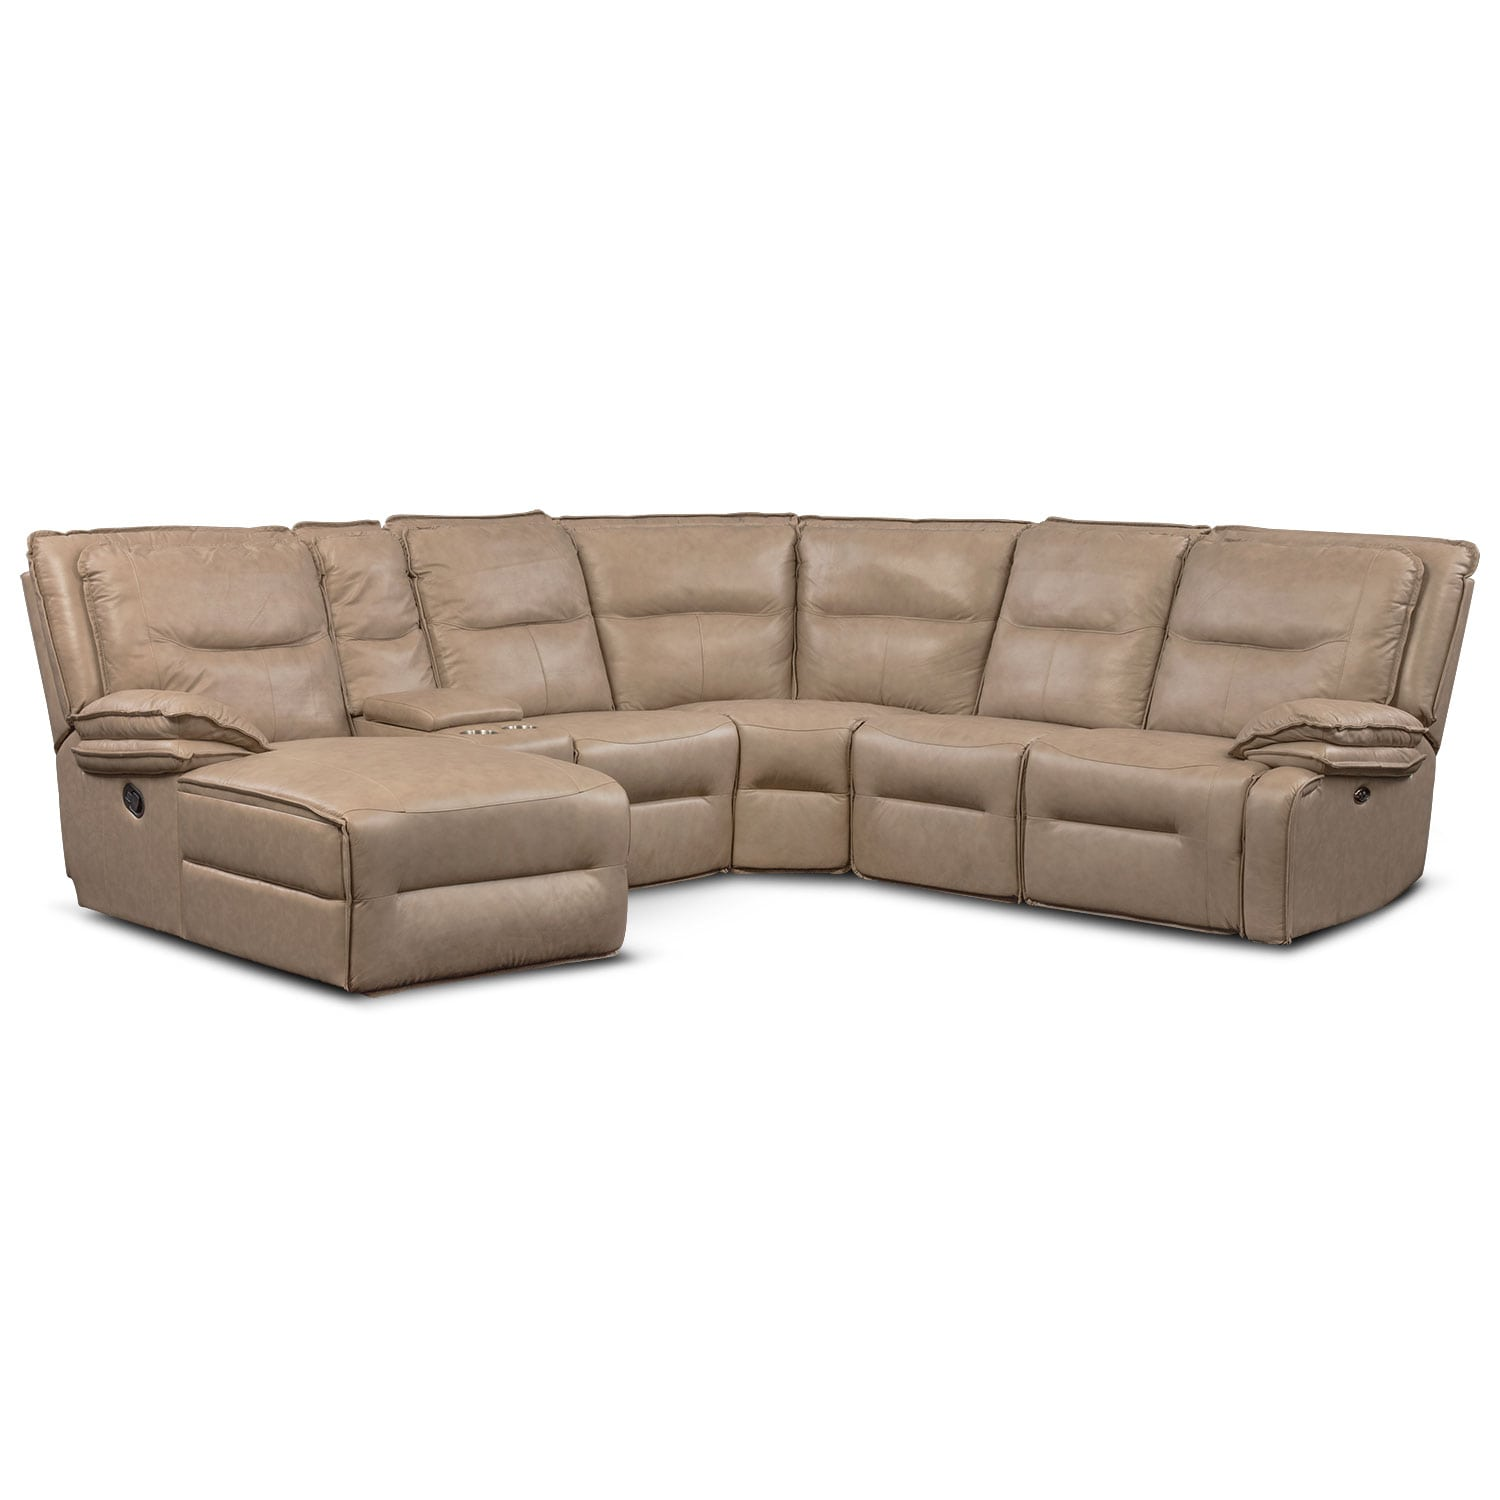 Living Room Furniture - Nikki 6-Piece Power Reclining Sectional with 2 Recliners and Left-Facing Chaise - Taupe